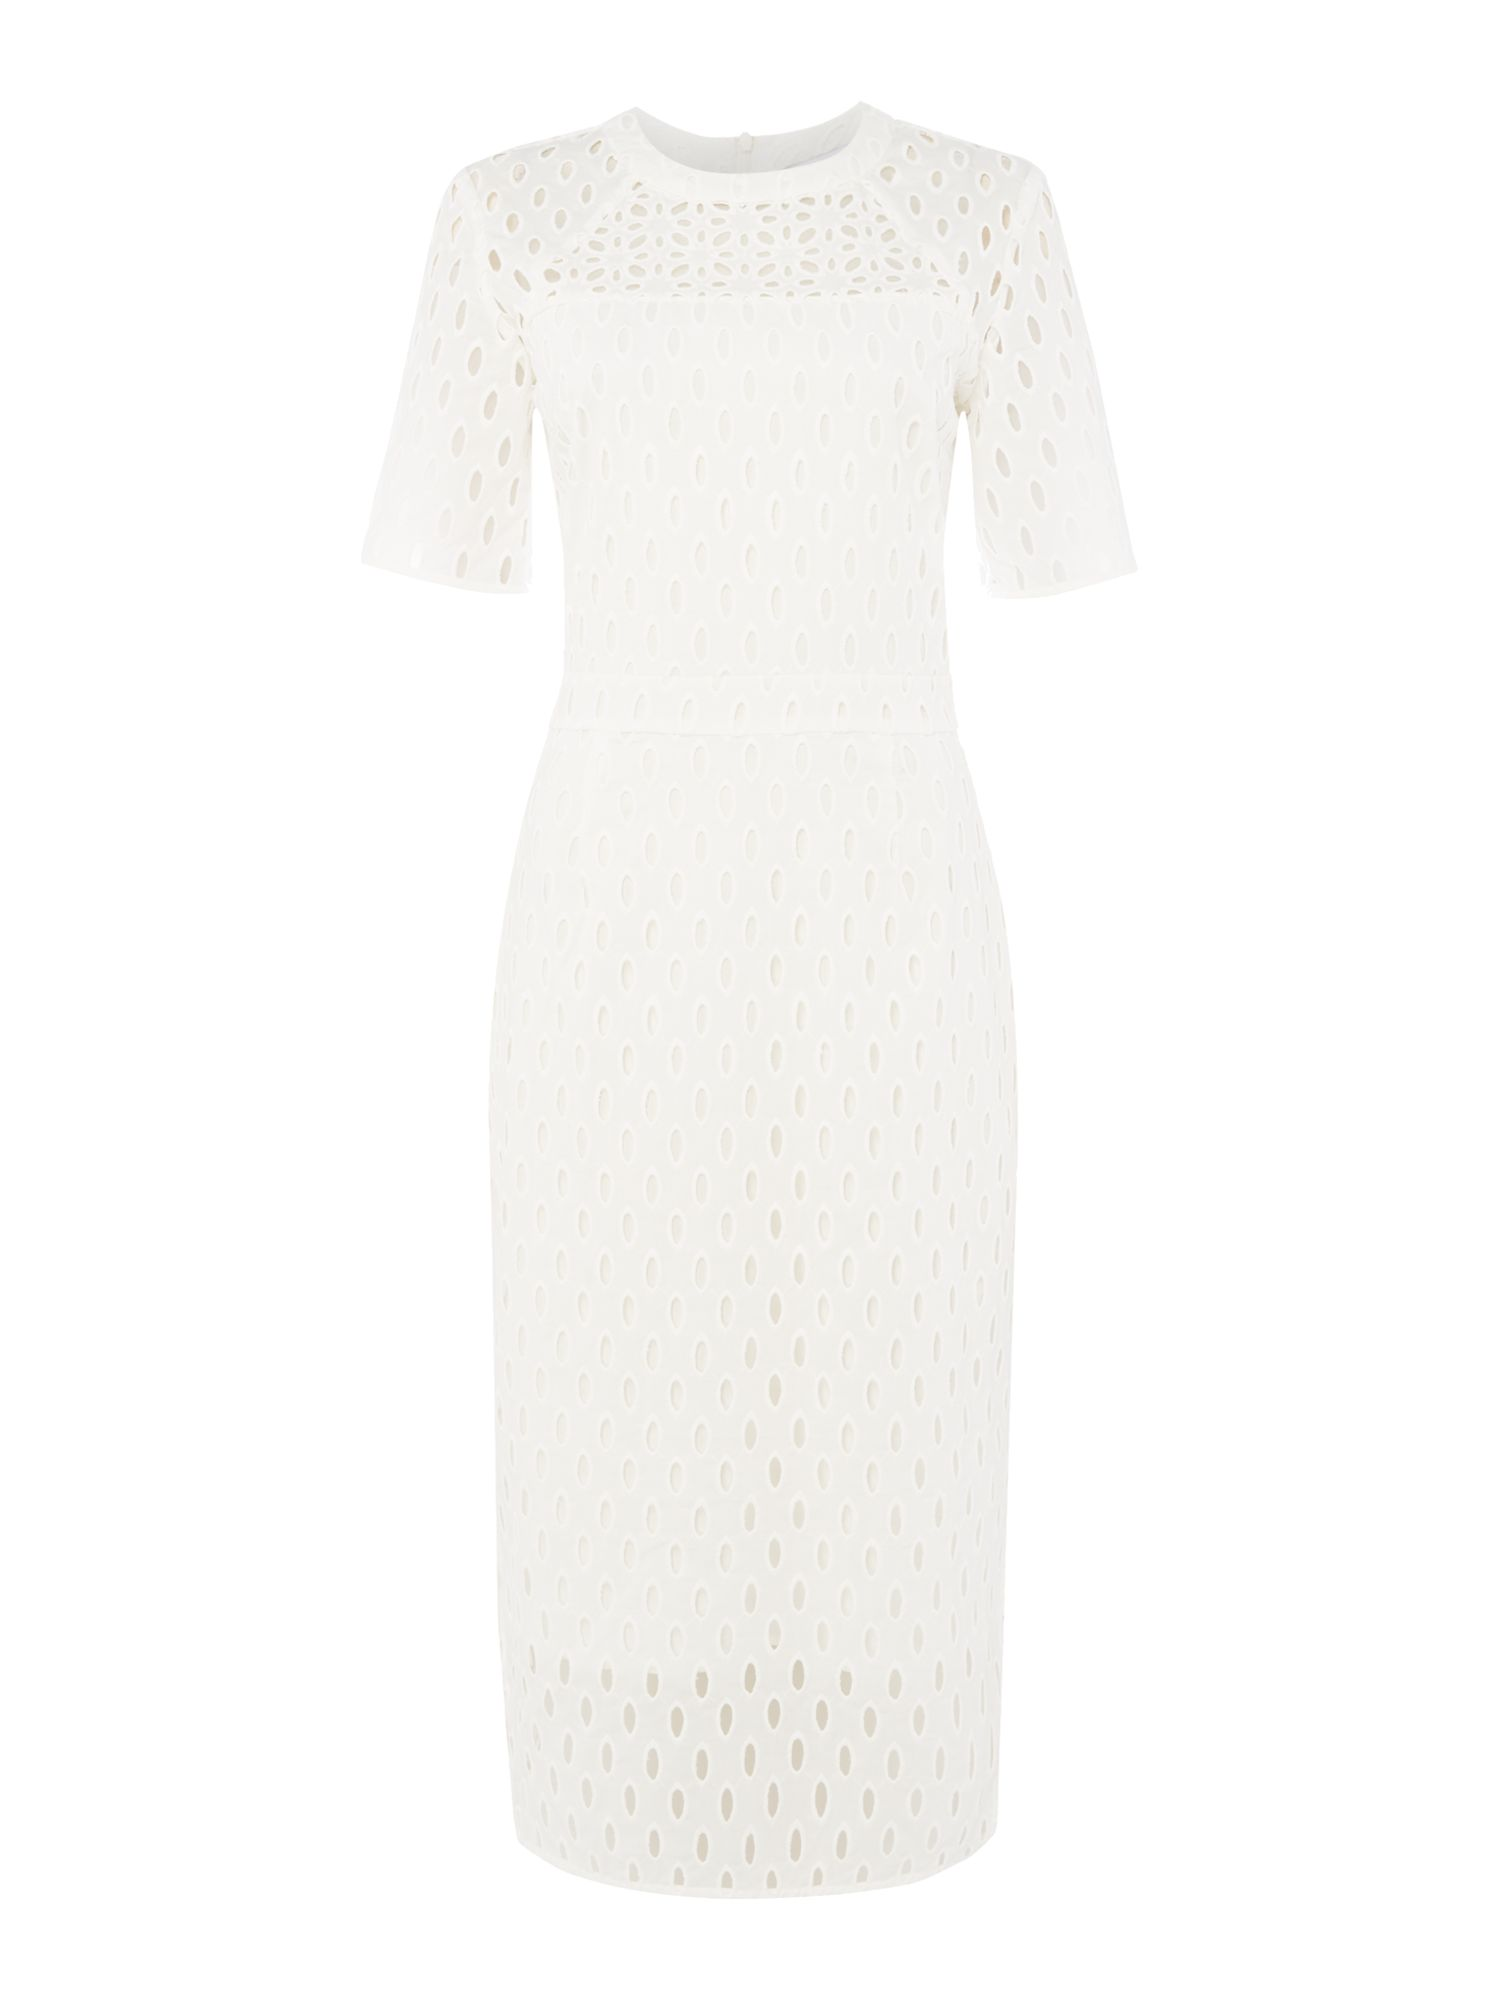 IVY & OAK Ivy & Oak cap sleeve brodery dress with round neck, White